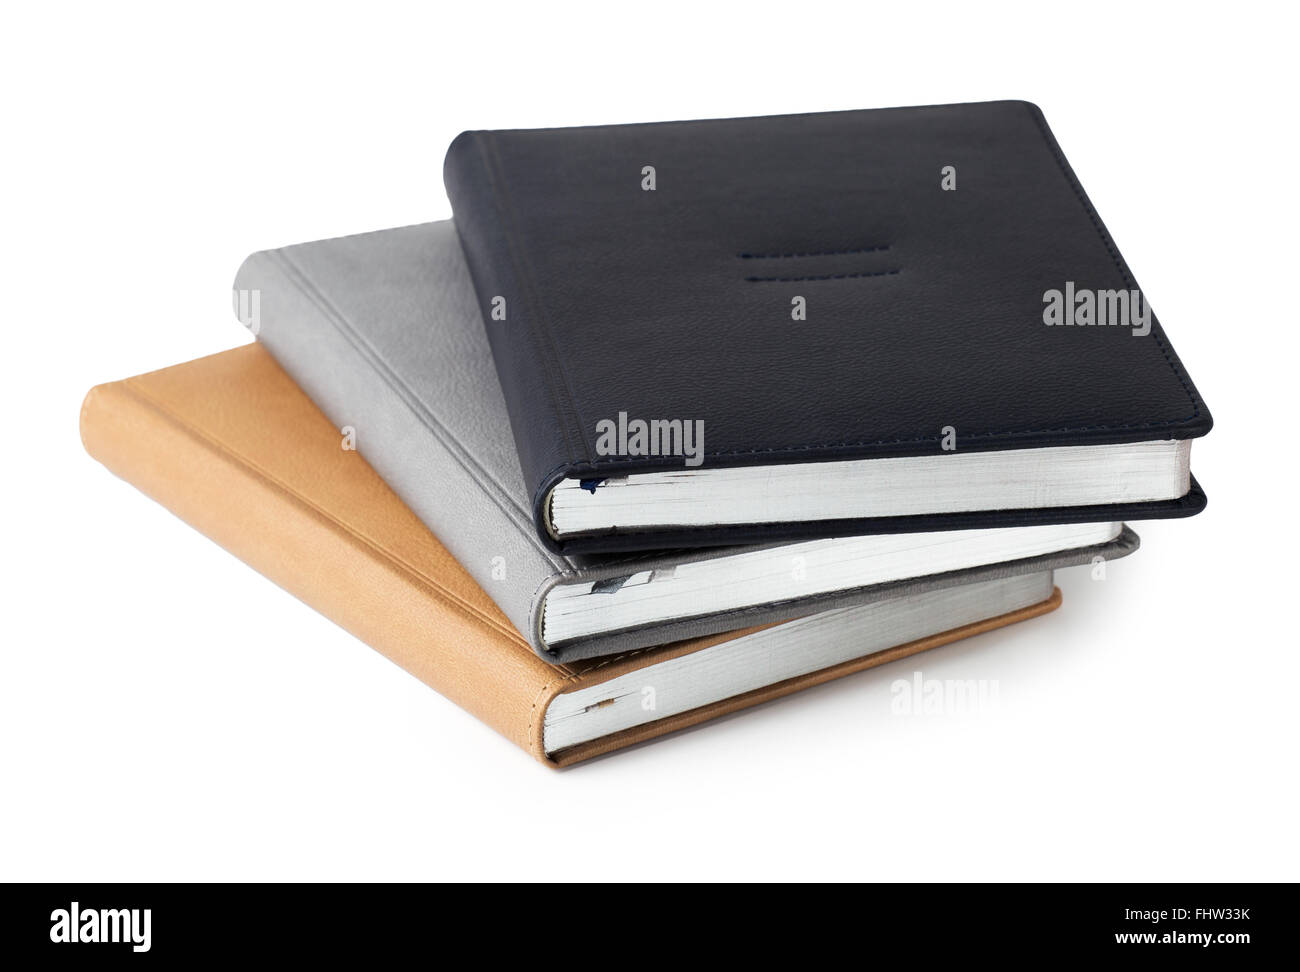 Assorted business hardcover leather diaries isolated on white background - Stock Image